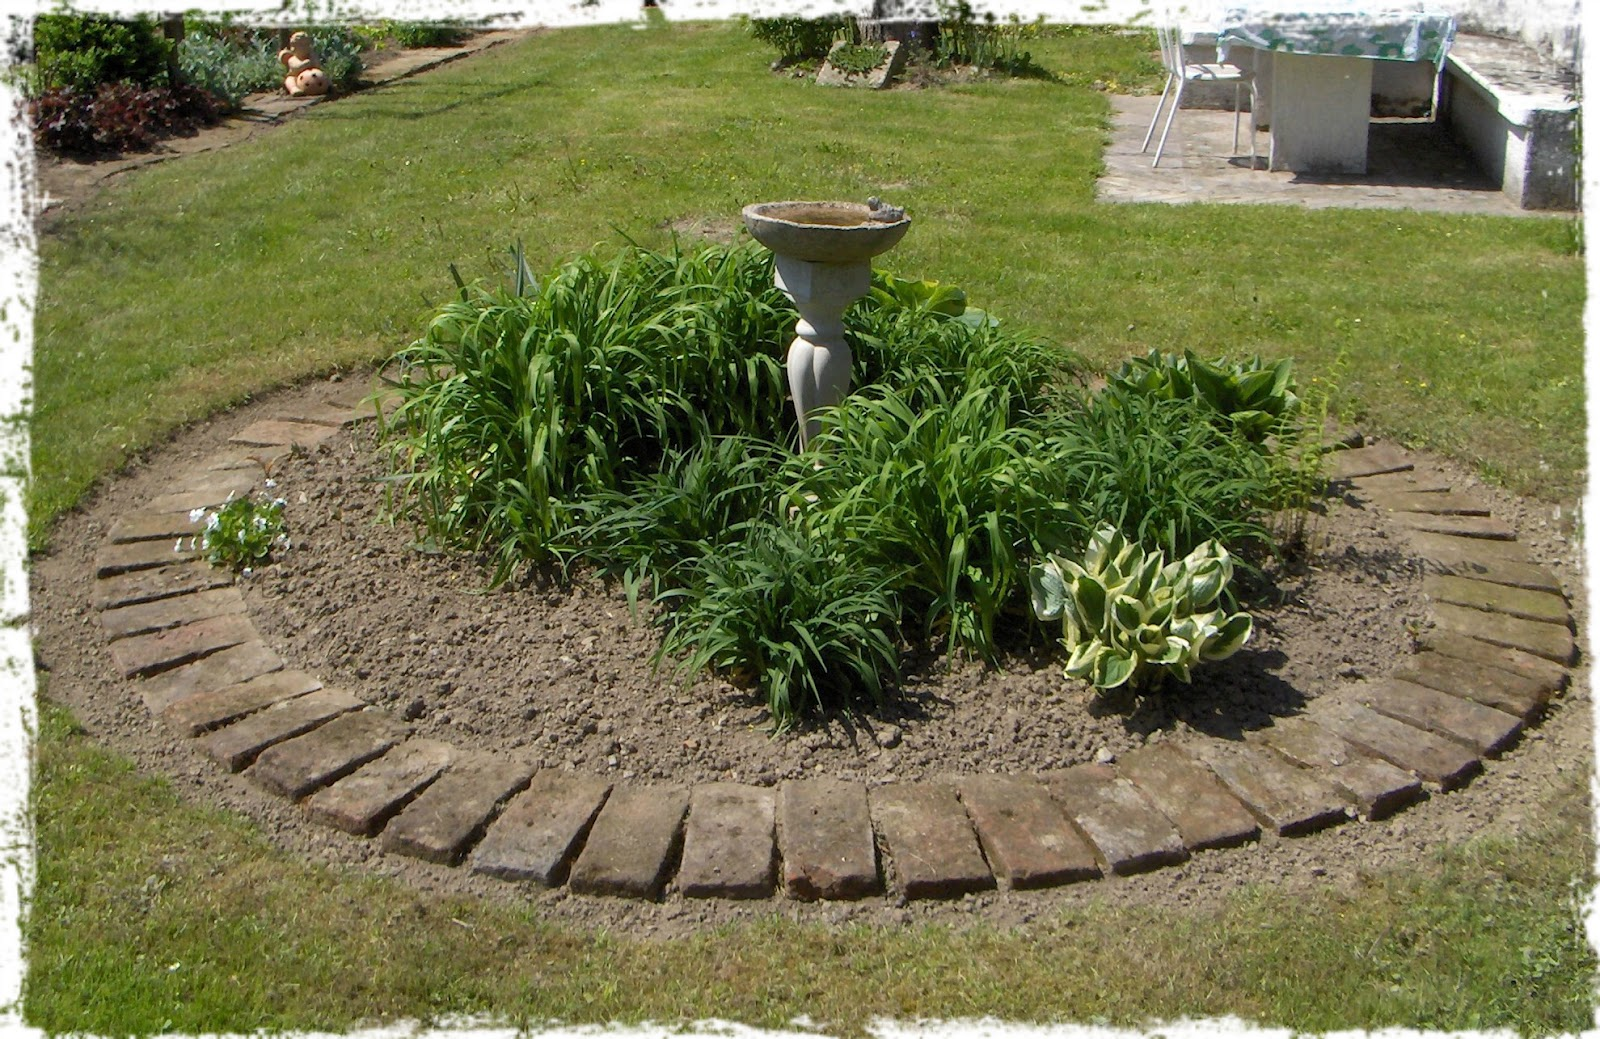 Round Flower Bed : This round flower bed misses the Houttuynia which still did not came ...